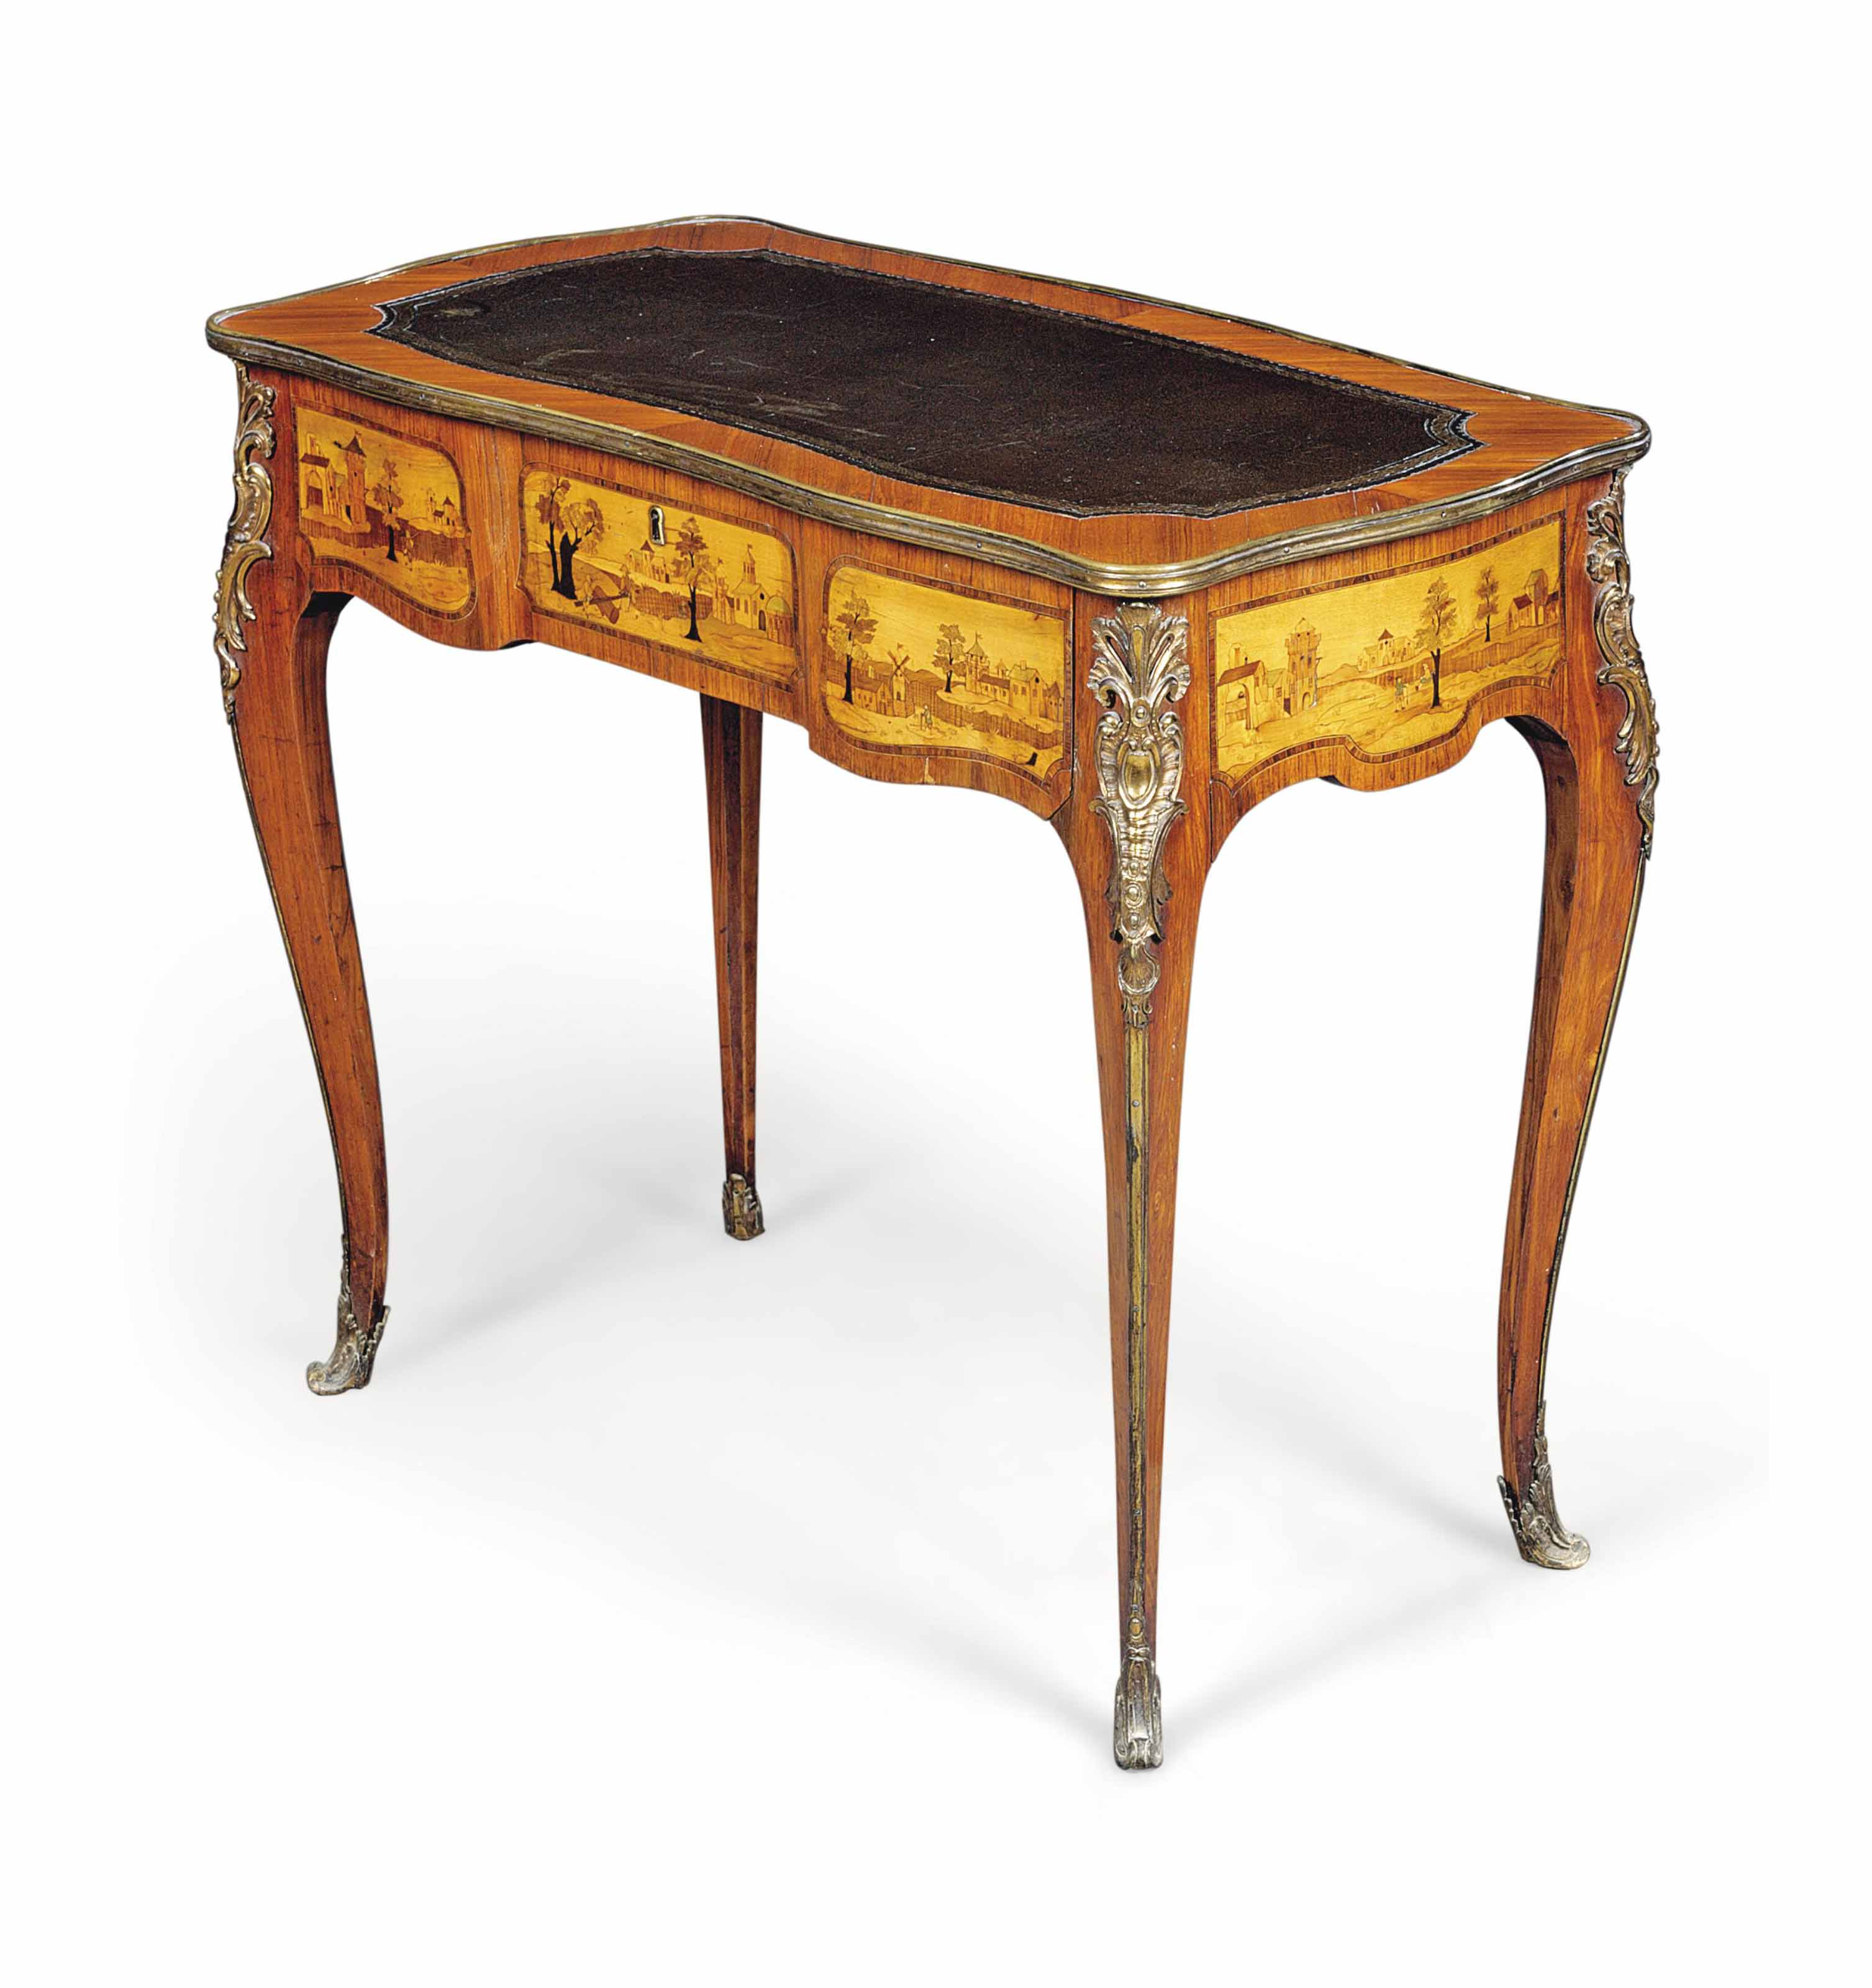 A LOUIS XV GILT-LACQUERED-BRONZE-MOUNTED TULIPWOOD, FRUITWOOD AND MARQUETRY TABLE A ECRIRE